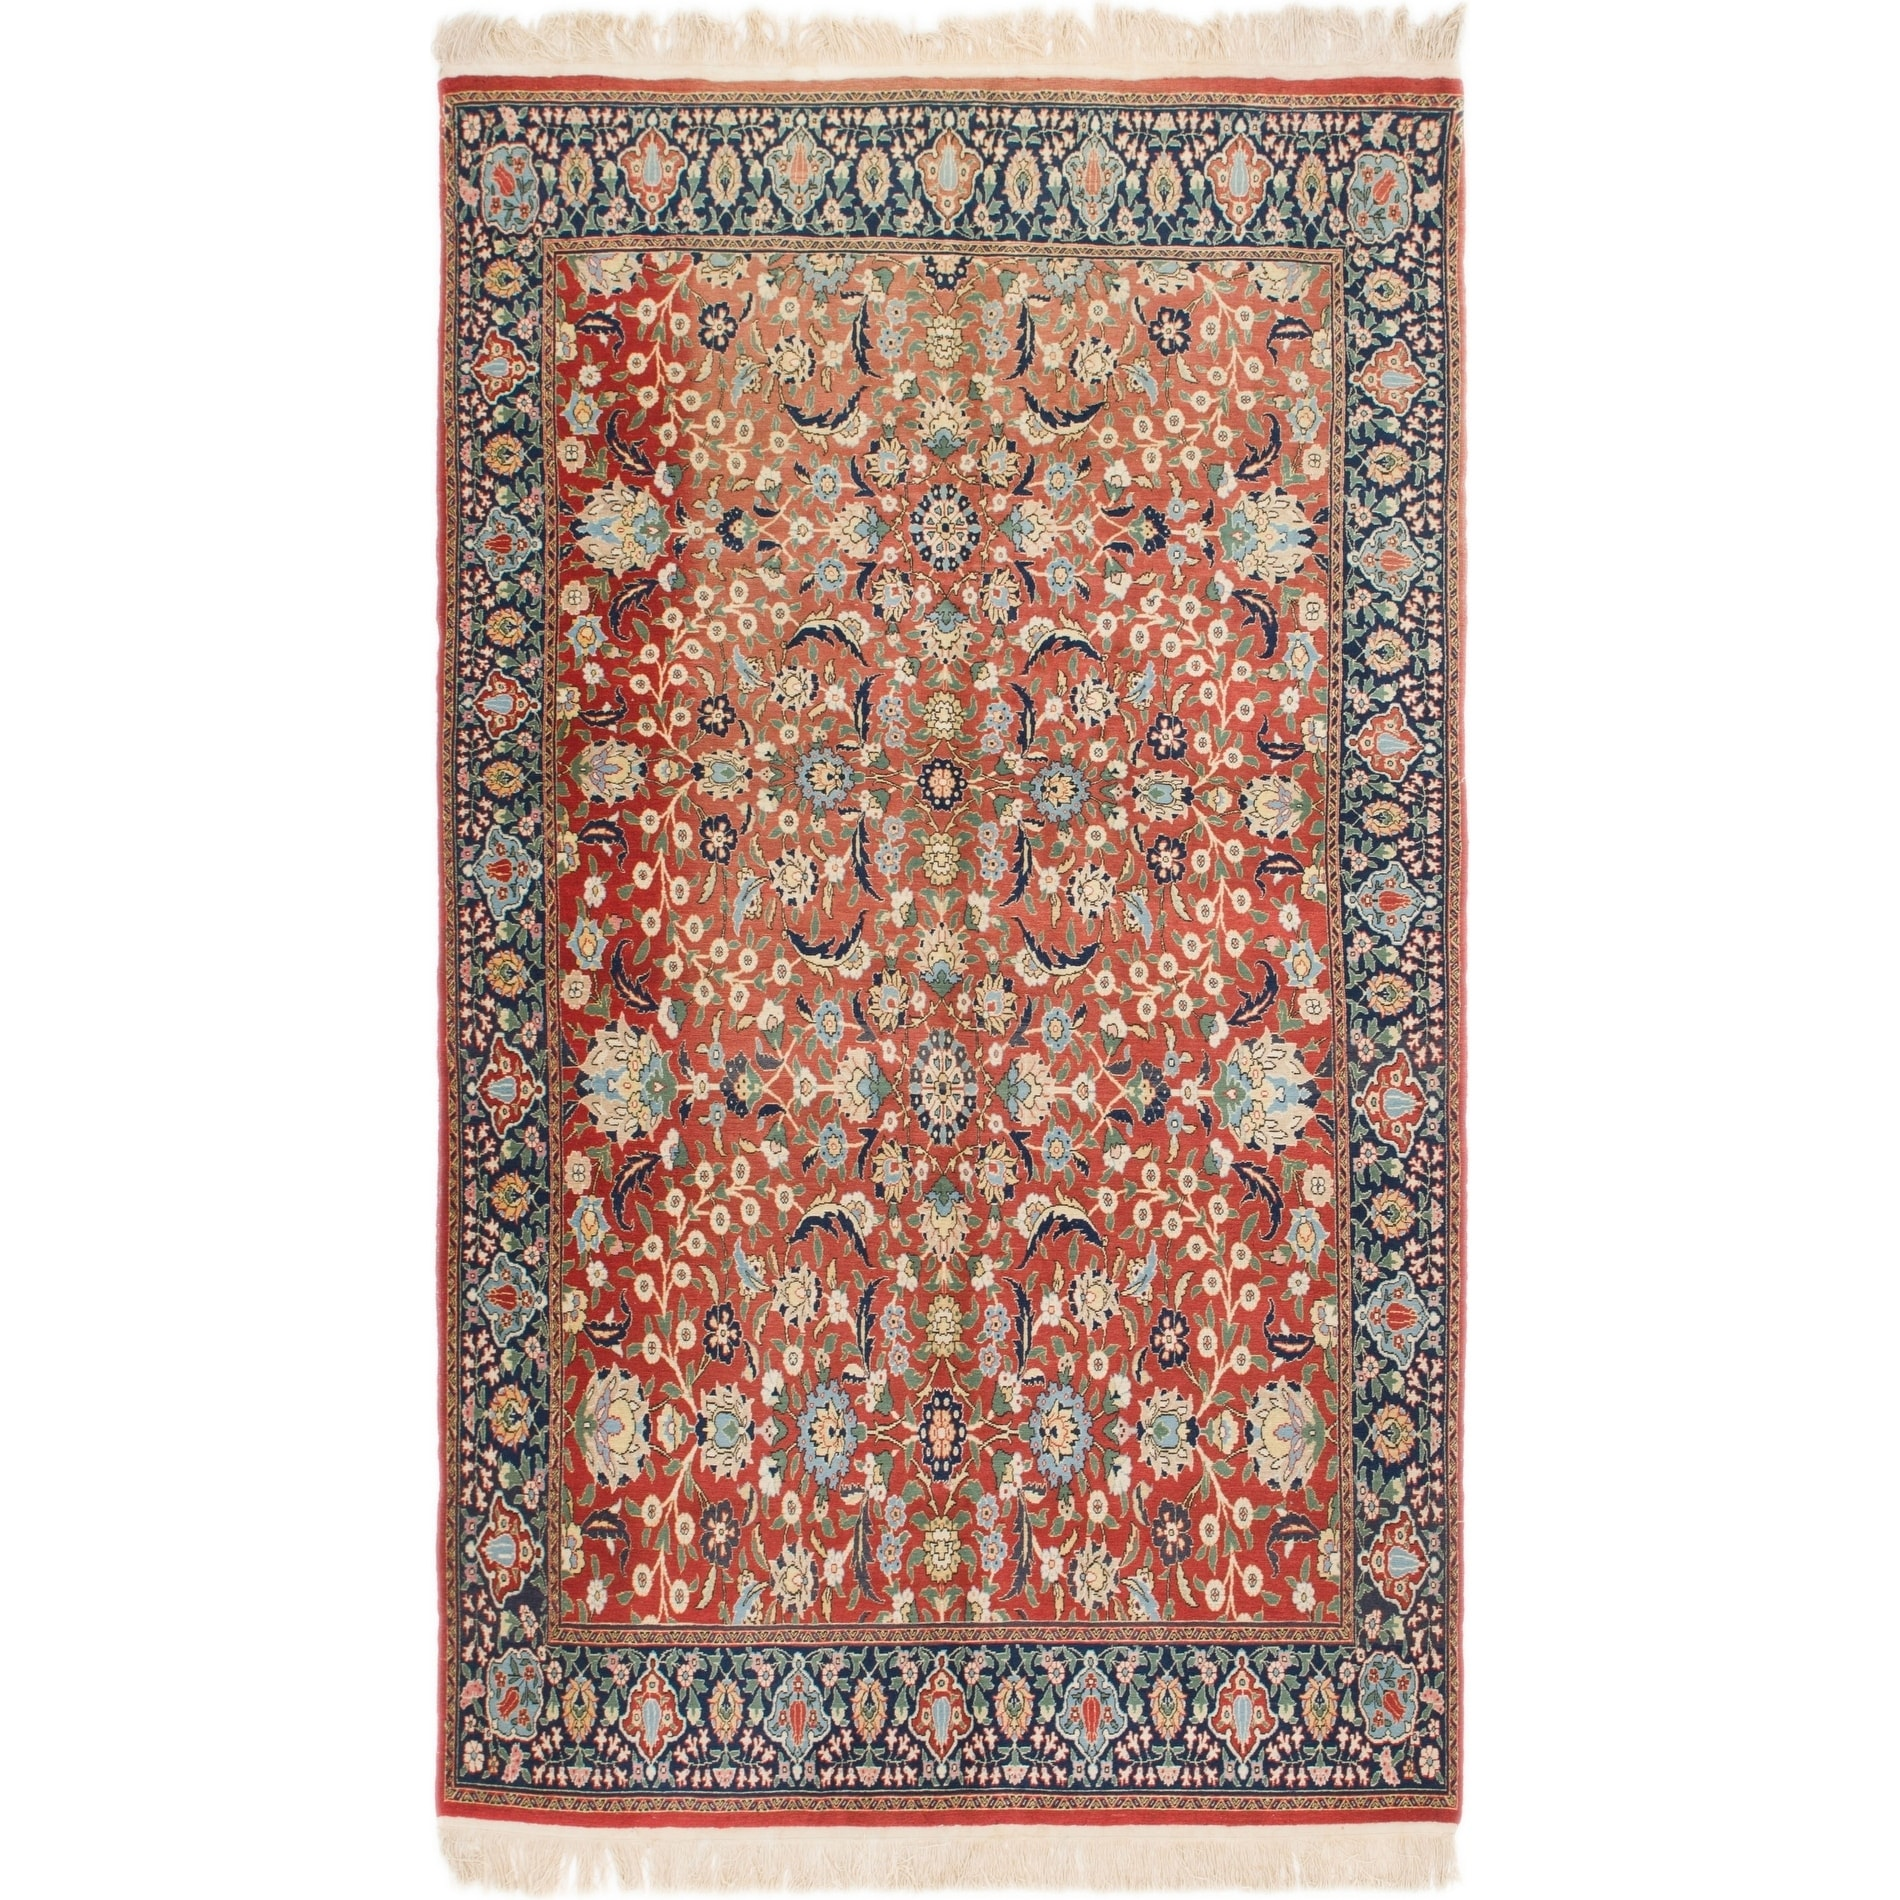 Hand Knotted Kashan Semi Antique Wool Area Rug - 5 9 x 9 8 (Red - 5 9 x 9 8)